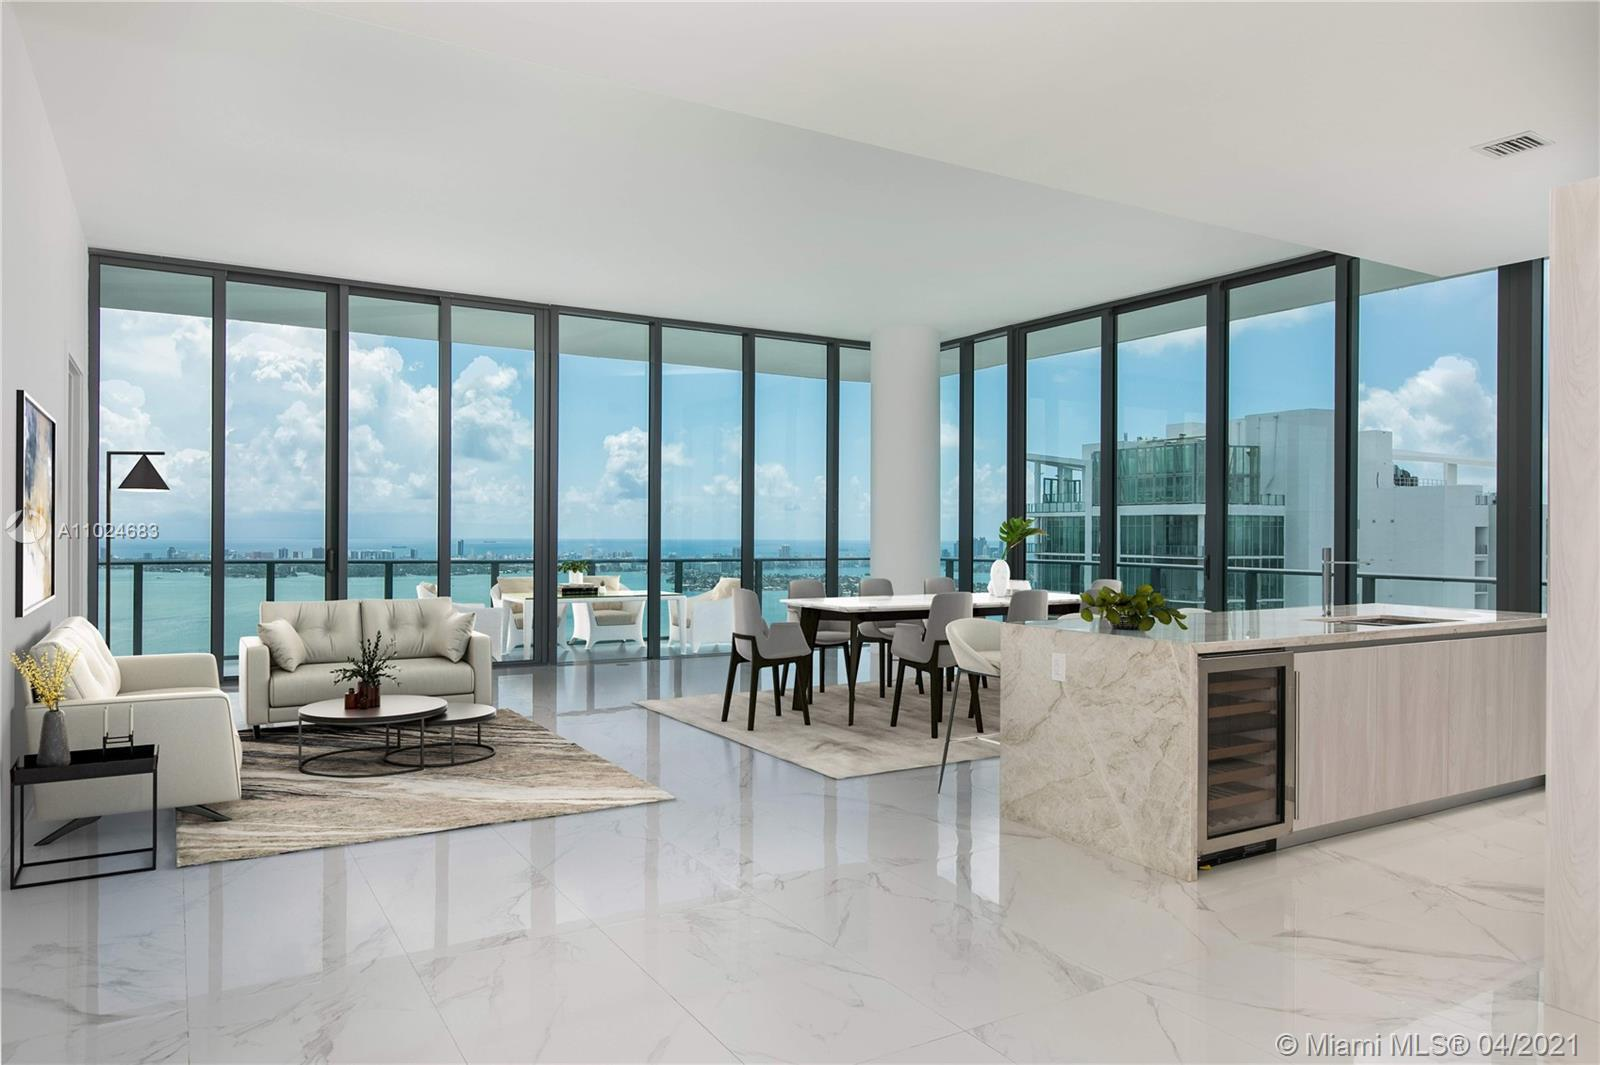 Stunning PH with unobstructed ocean views. 4 beds and 4 1/2 baths with a gorgeous floors, wraparound